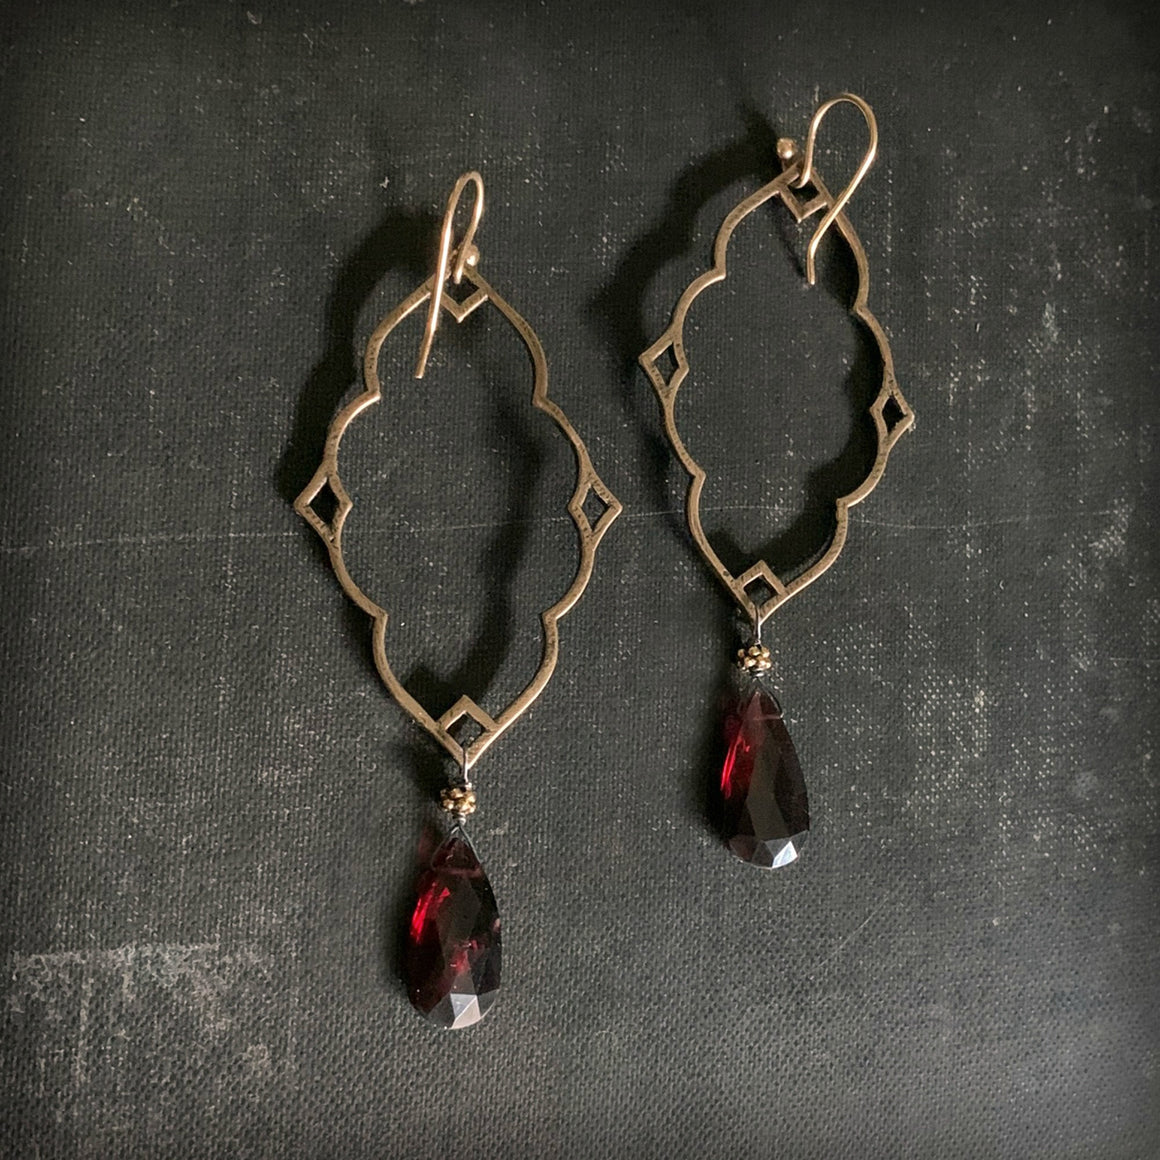 Large Classic Quatrefoil SOLID BRONZE Garnet Statement Earrings - ViaLove Designs